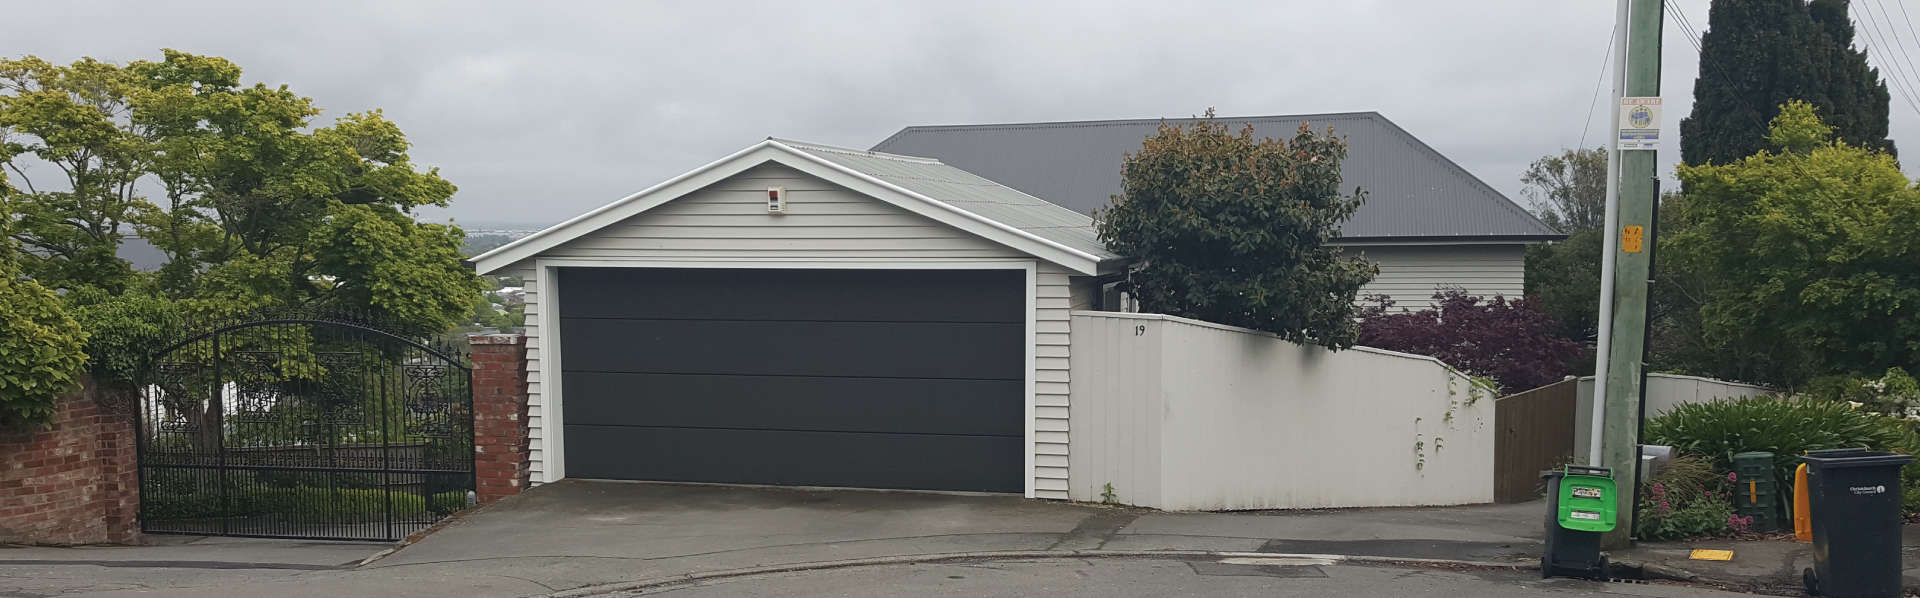 Garage Door Repair And Service Christchurch Garage Doors